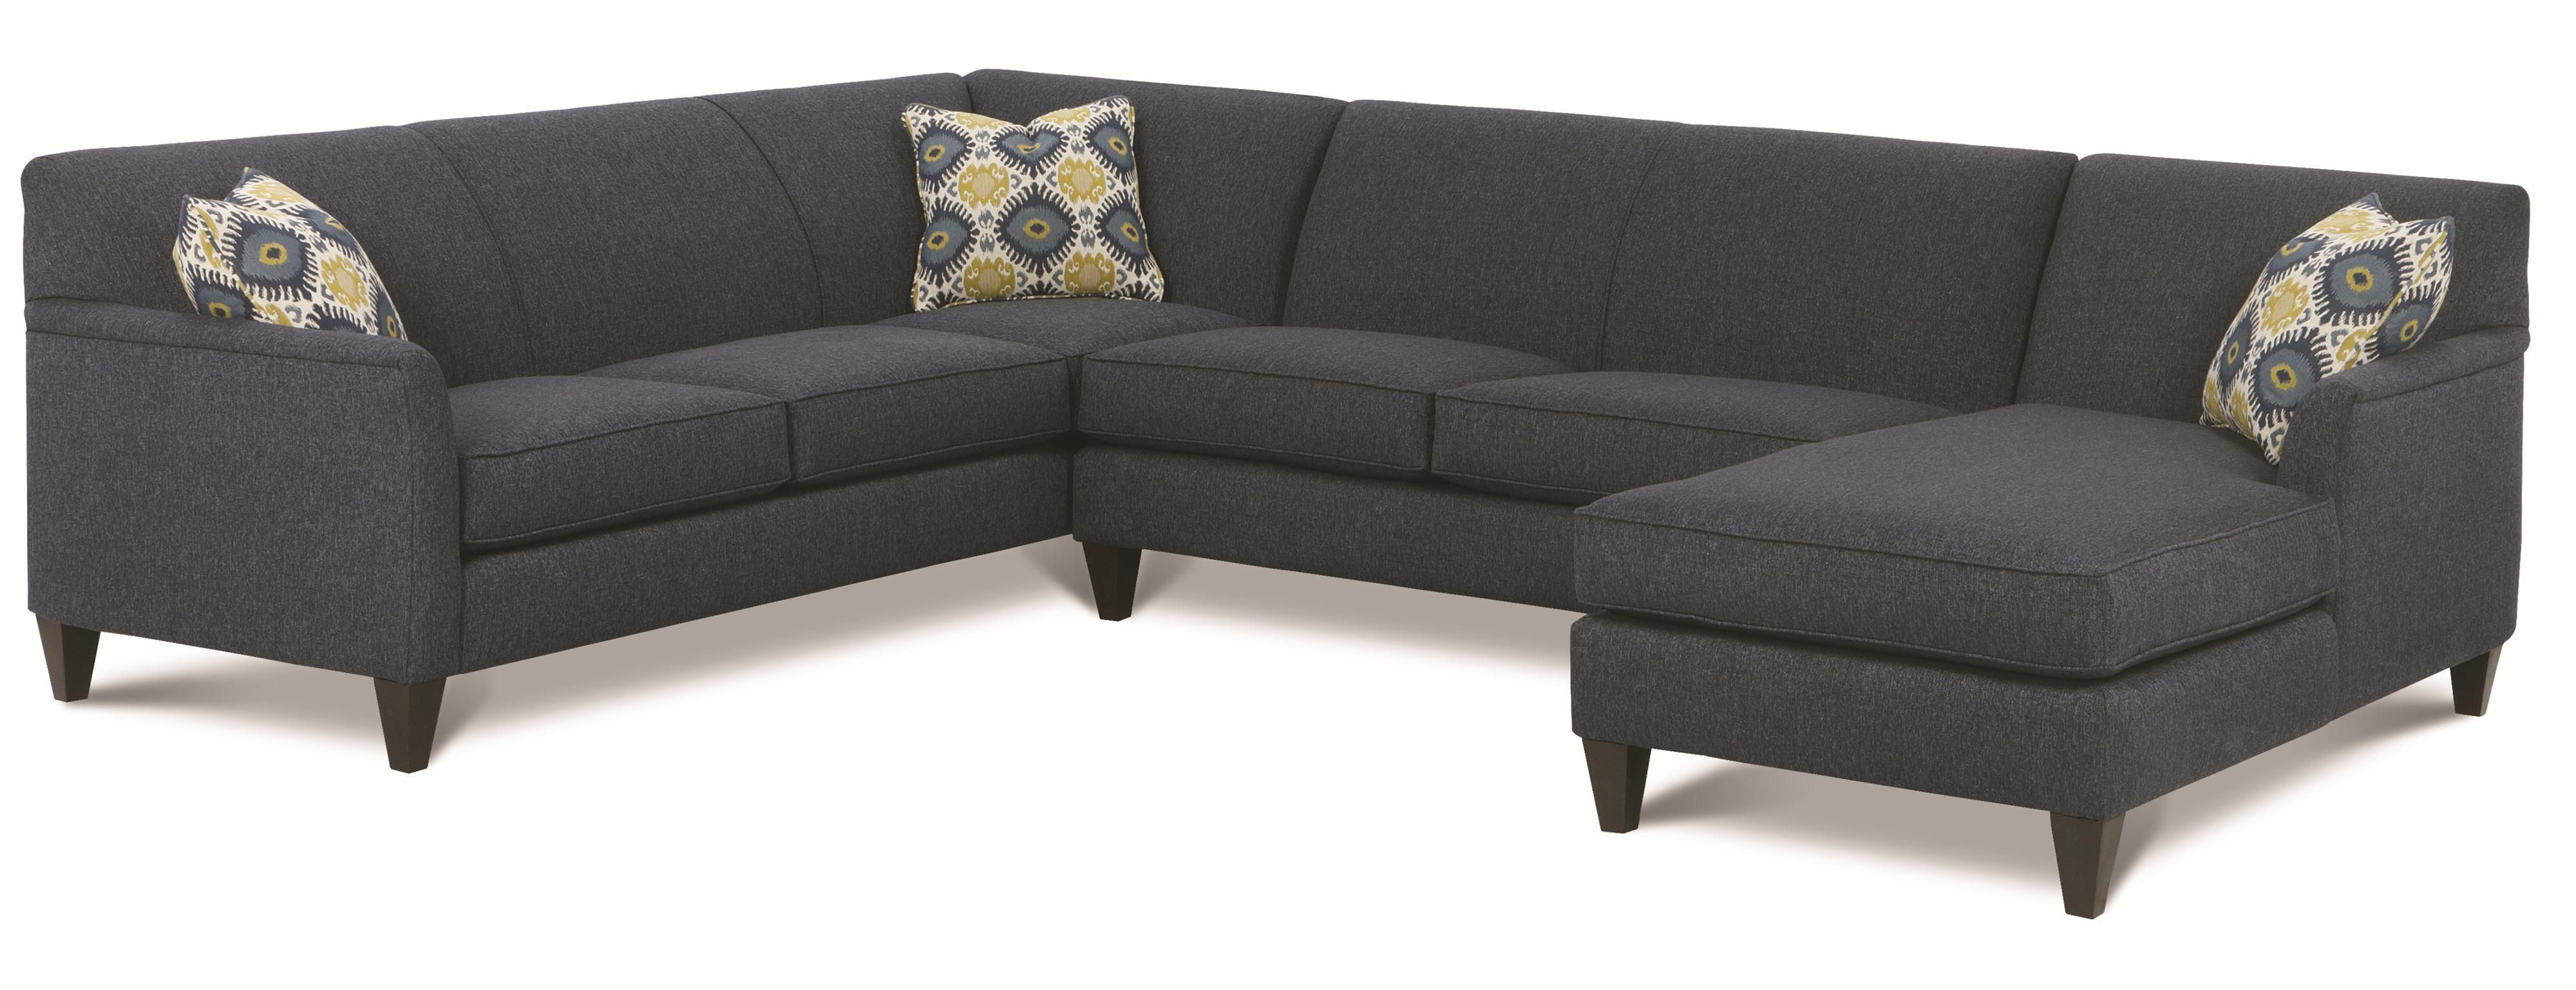 Varick RXO Custom 3 Pc Sectional w LAF Chaise by Rowe Ordered as